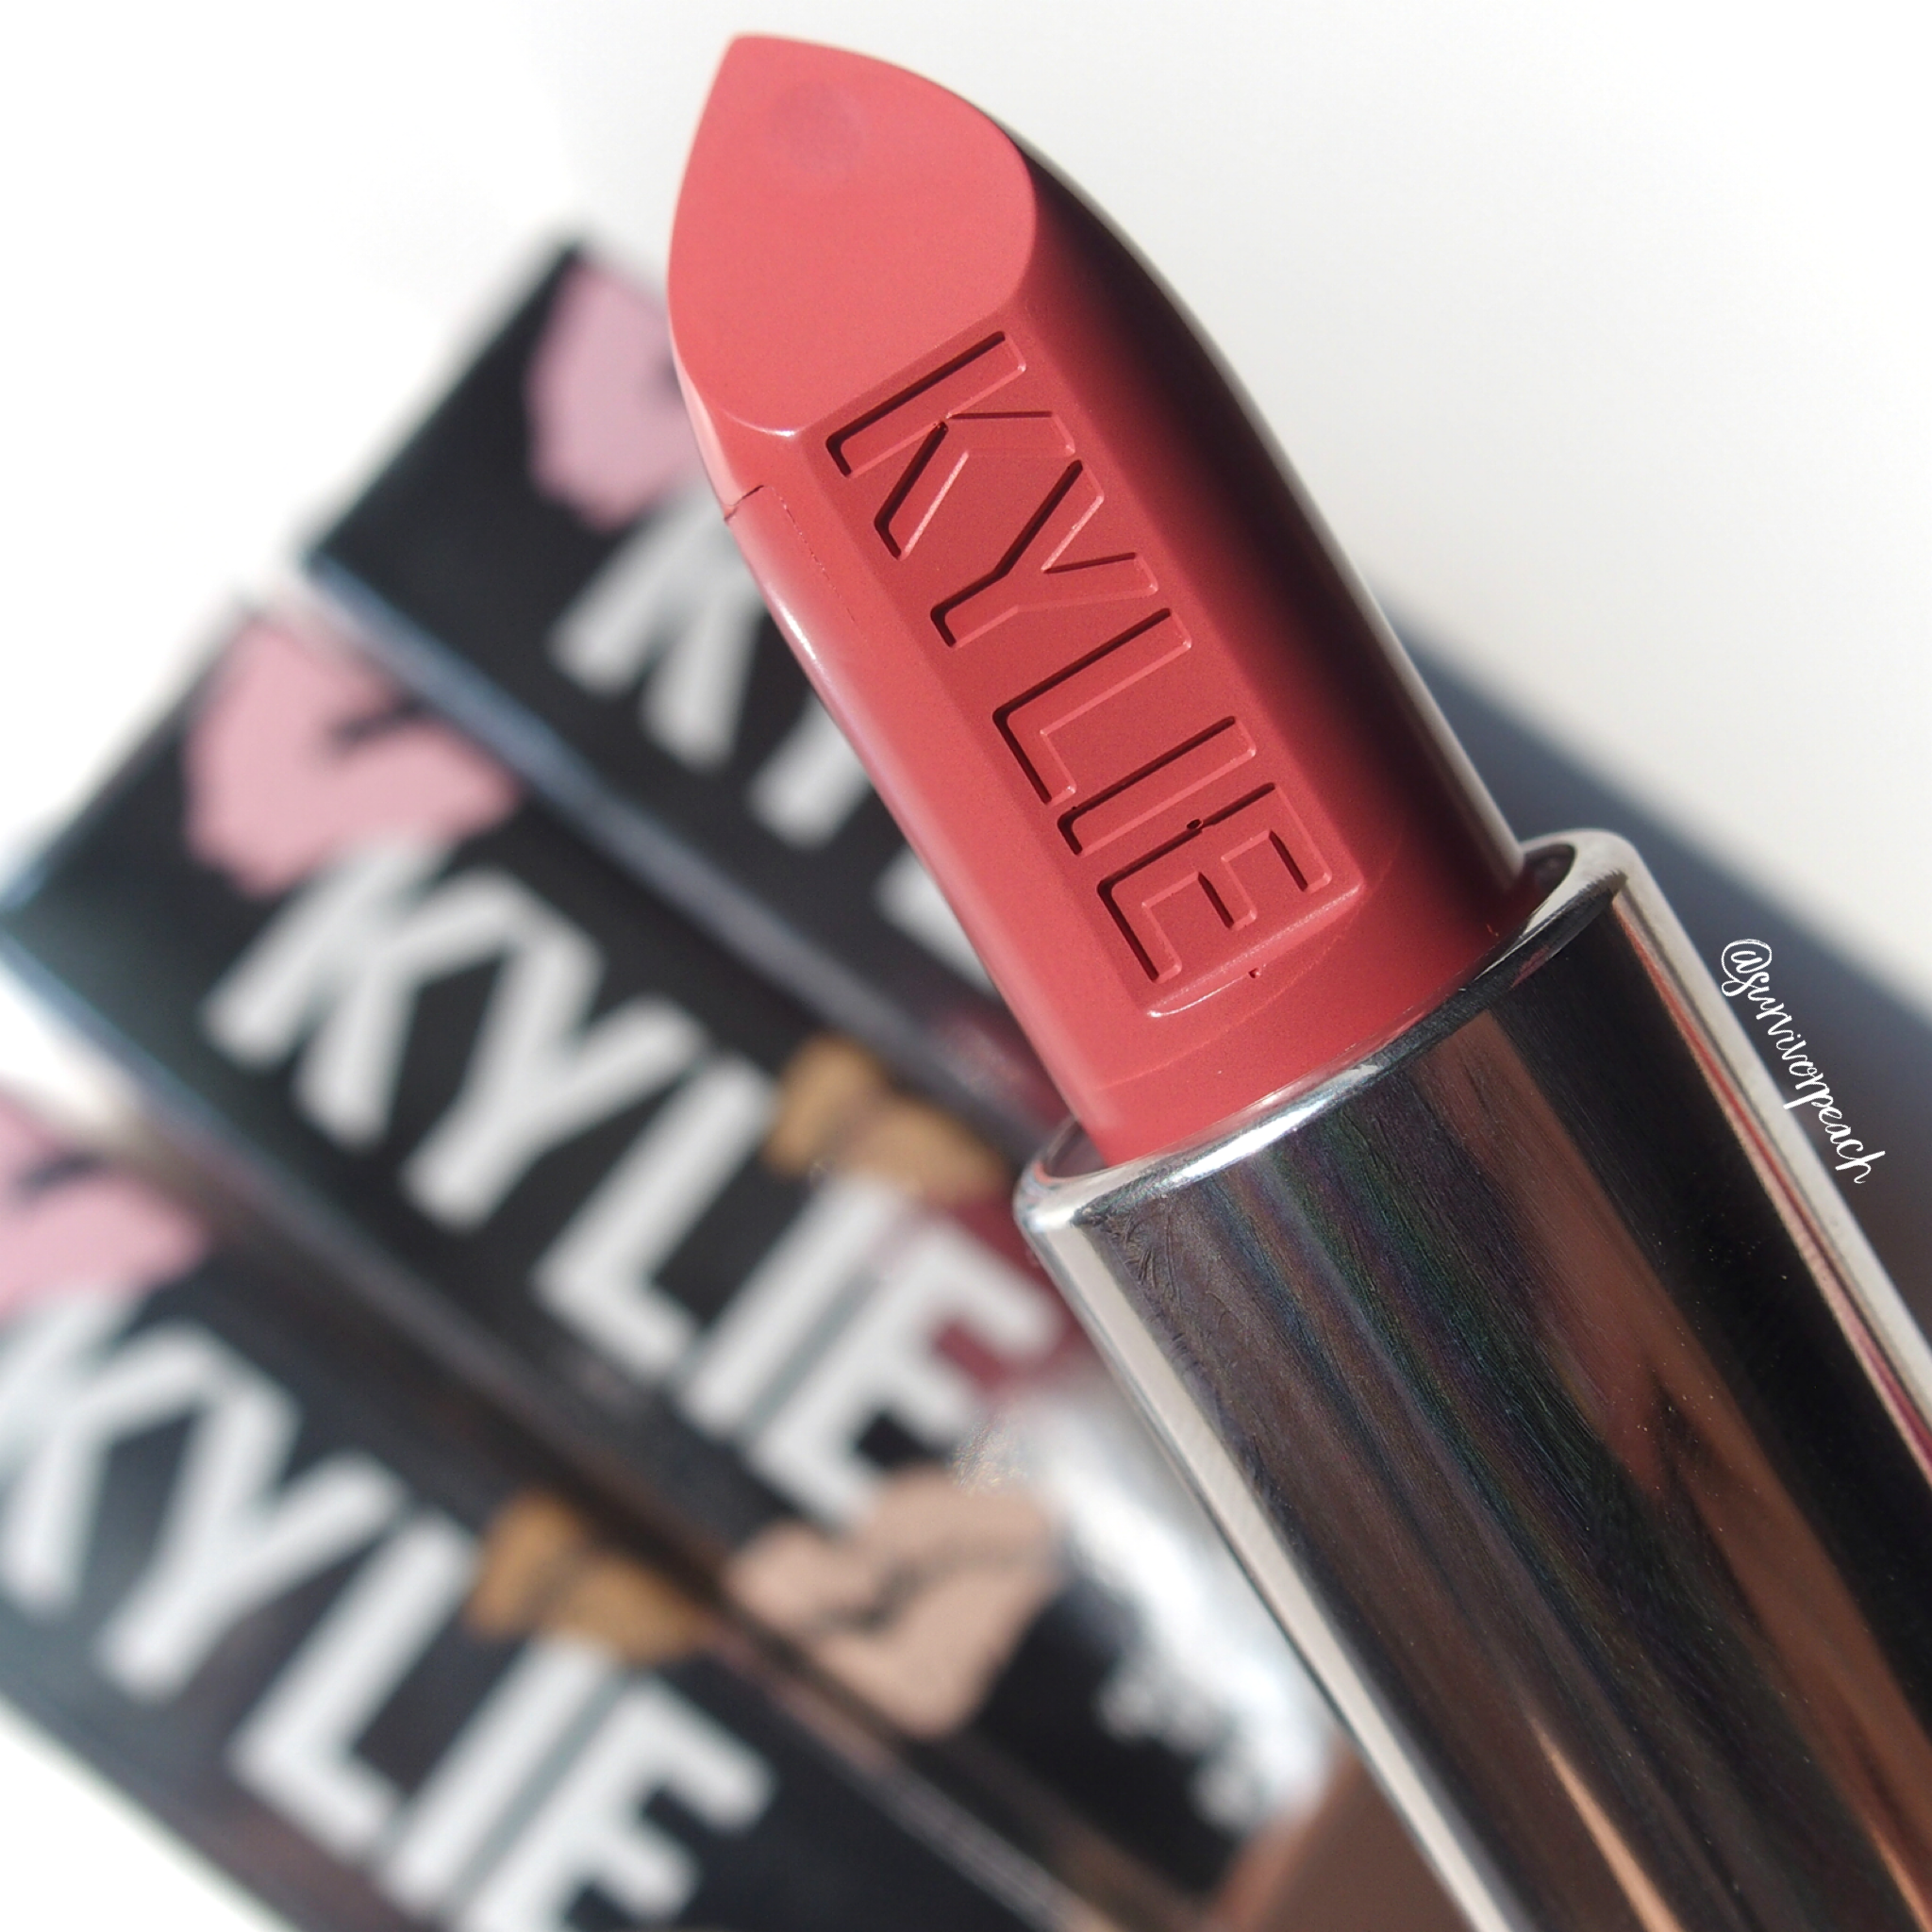 Kylie Cosmetics Creme lipstick in shade Puppy Love